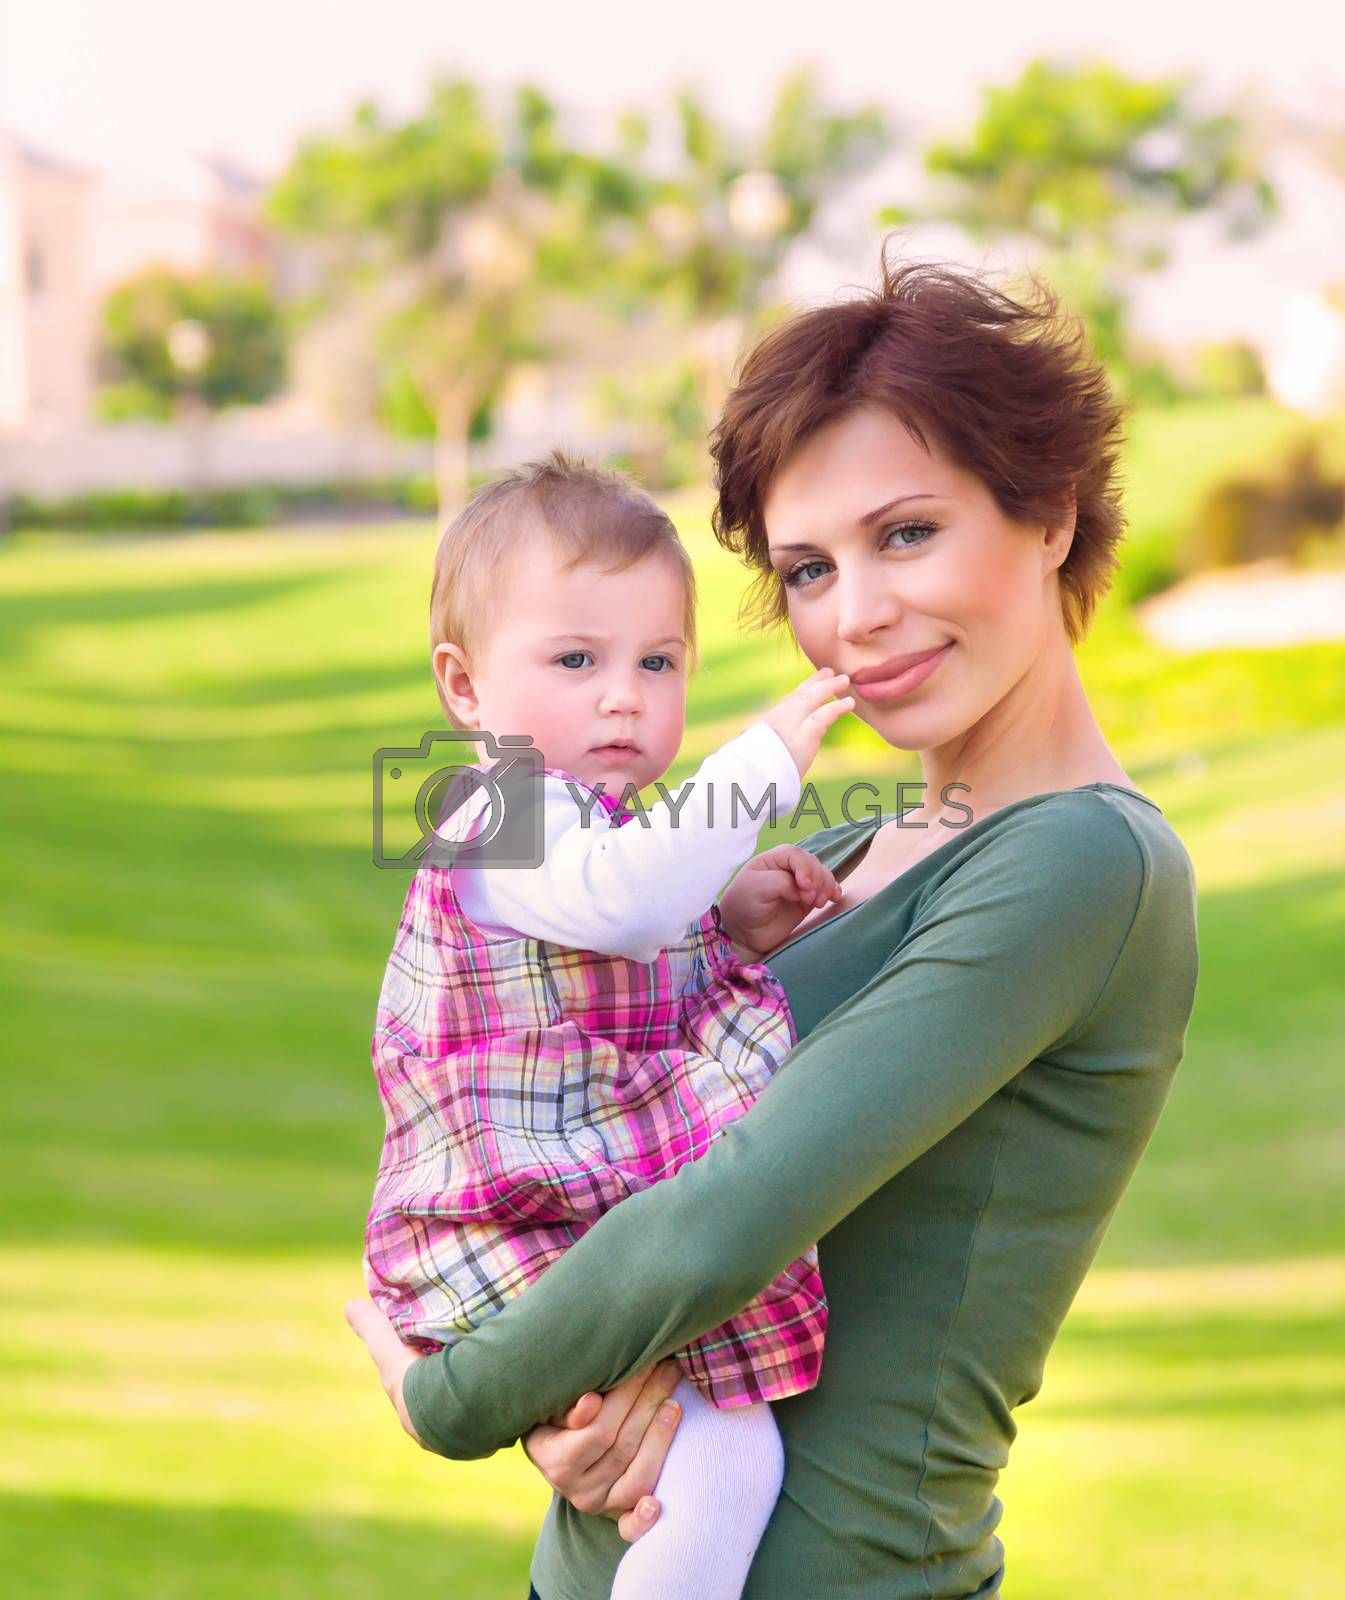 Mother with baby daughter having fun outdoor, relaxation on backyard, walking in the park, enjoying warm spring weather